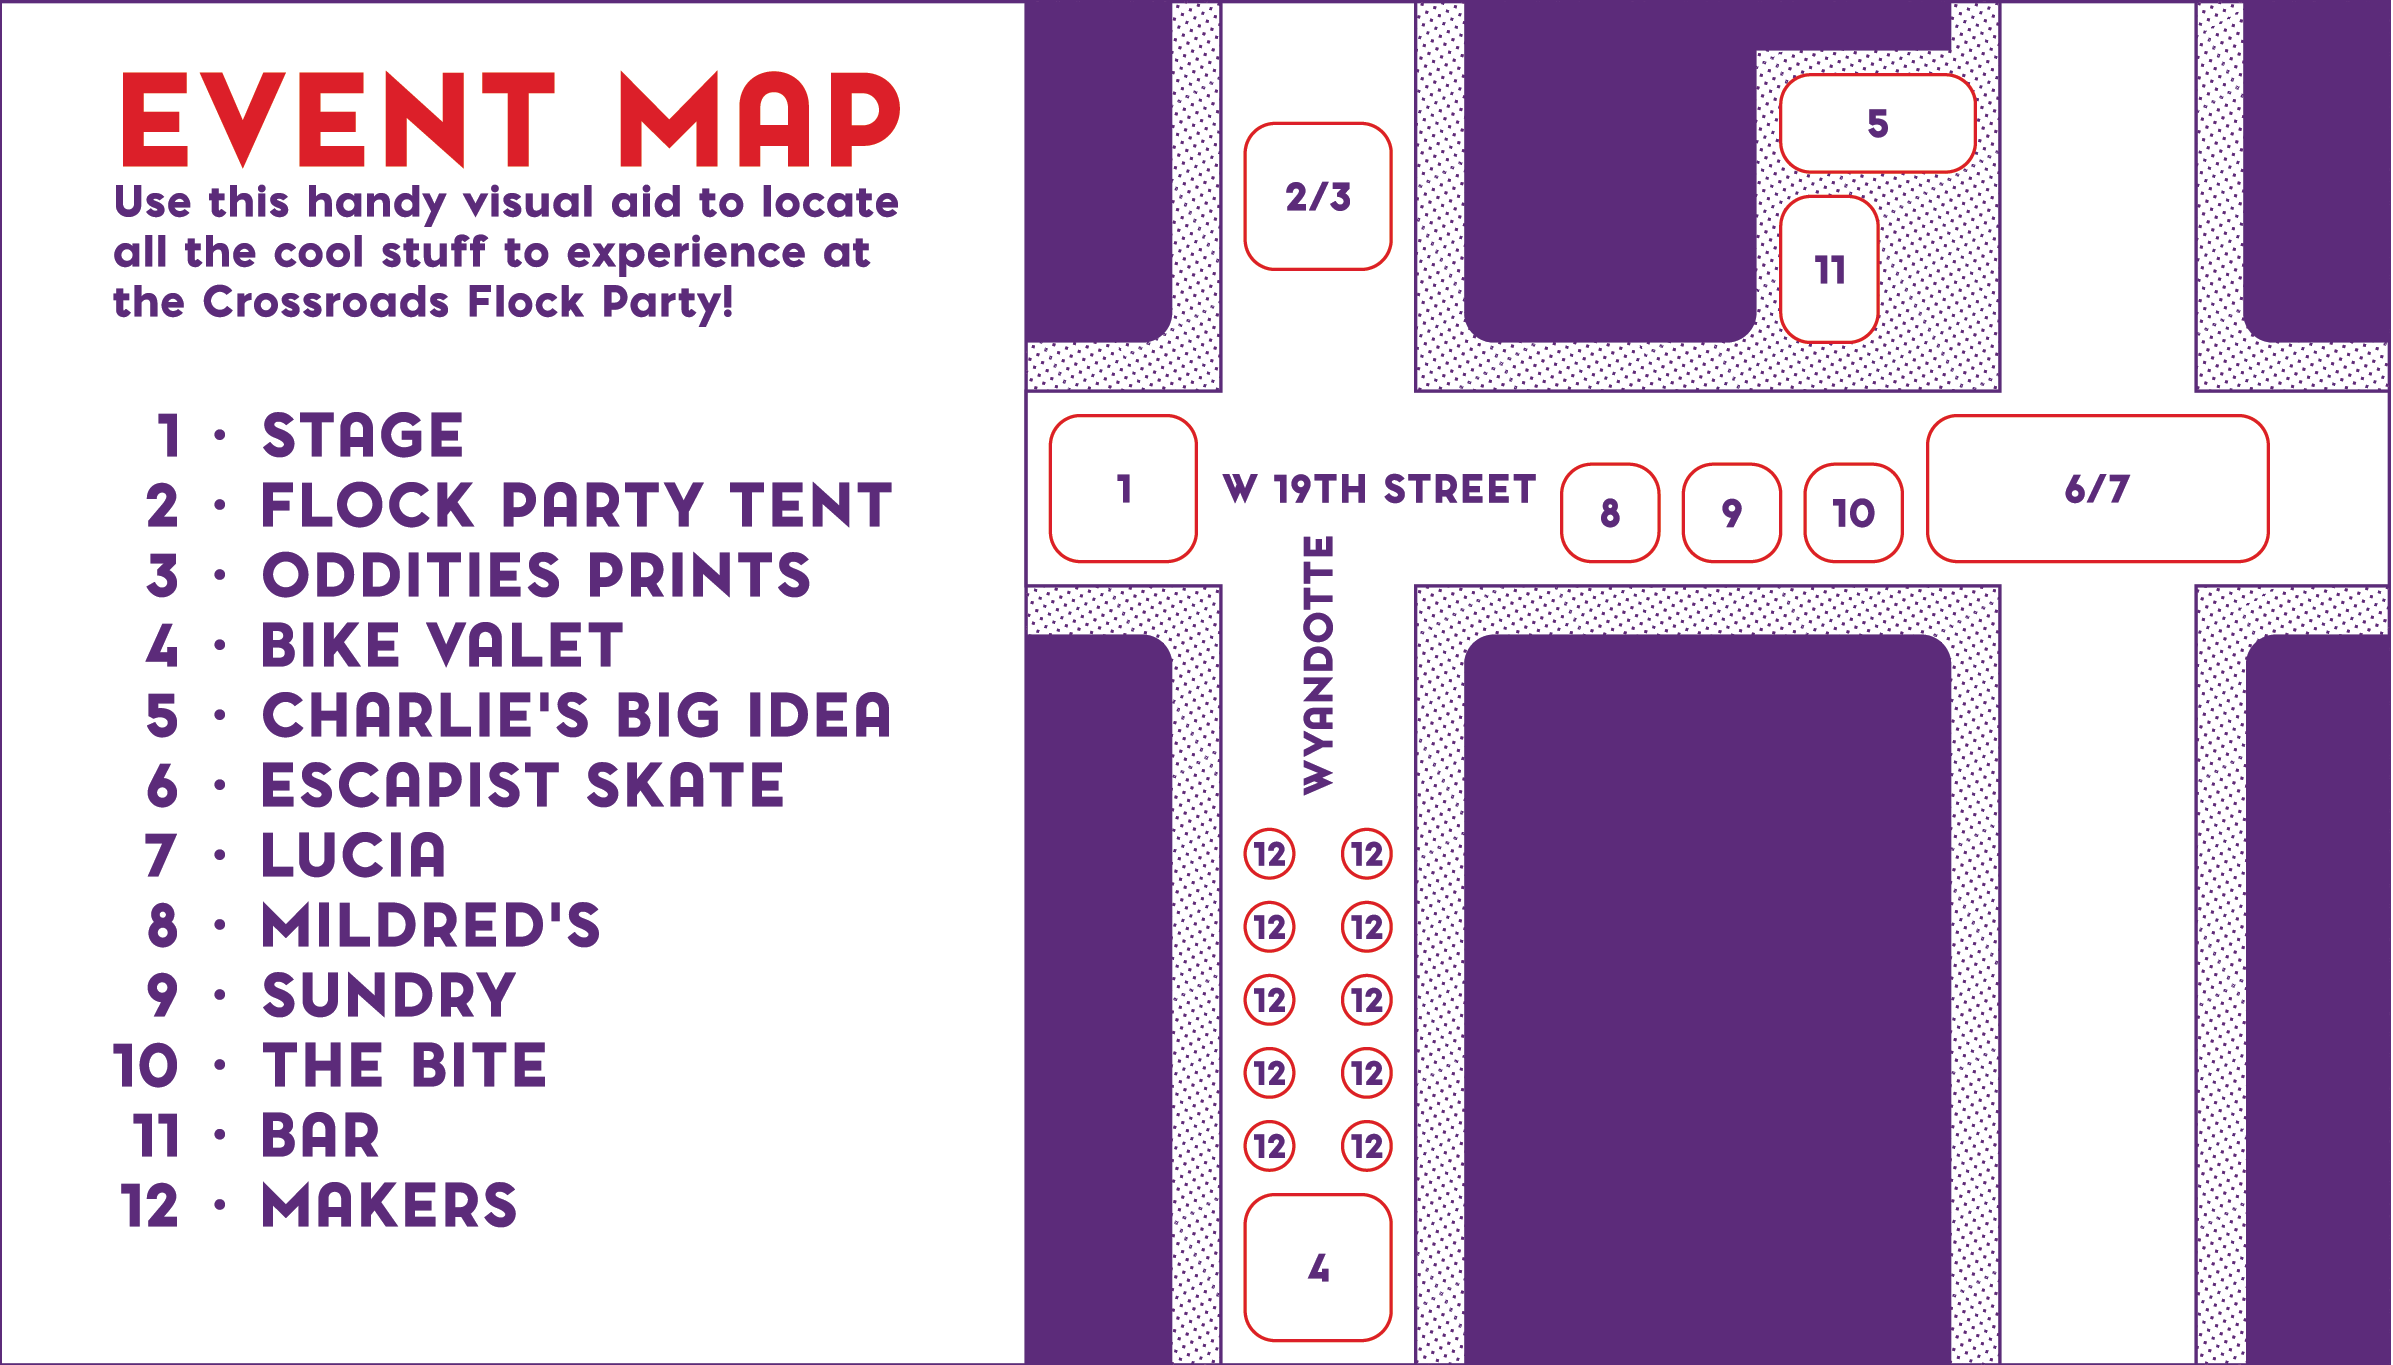 Crossroads Flock Party 2016 event map